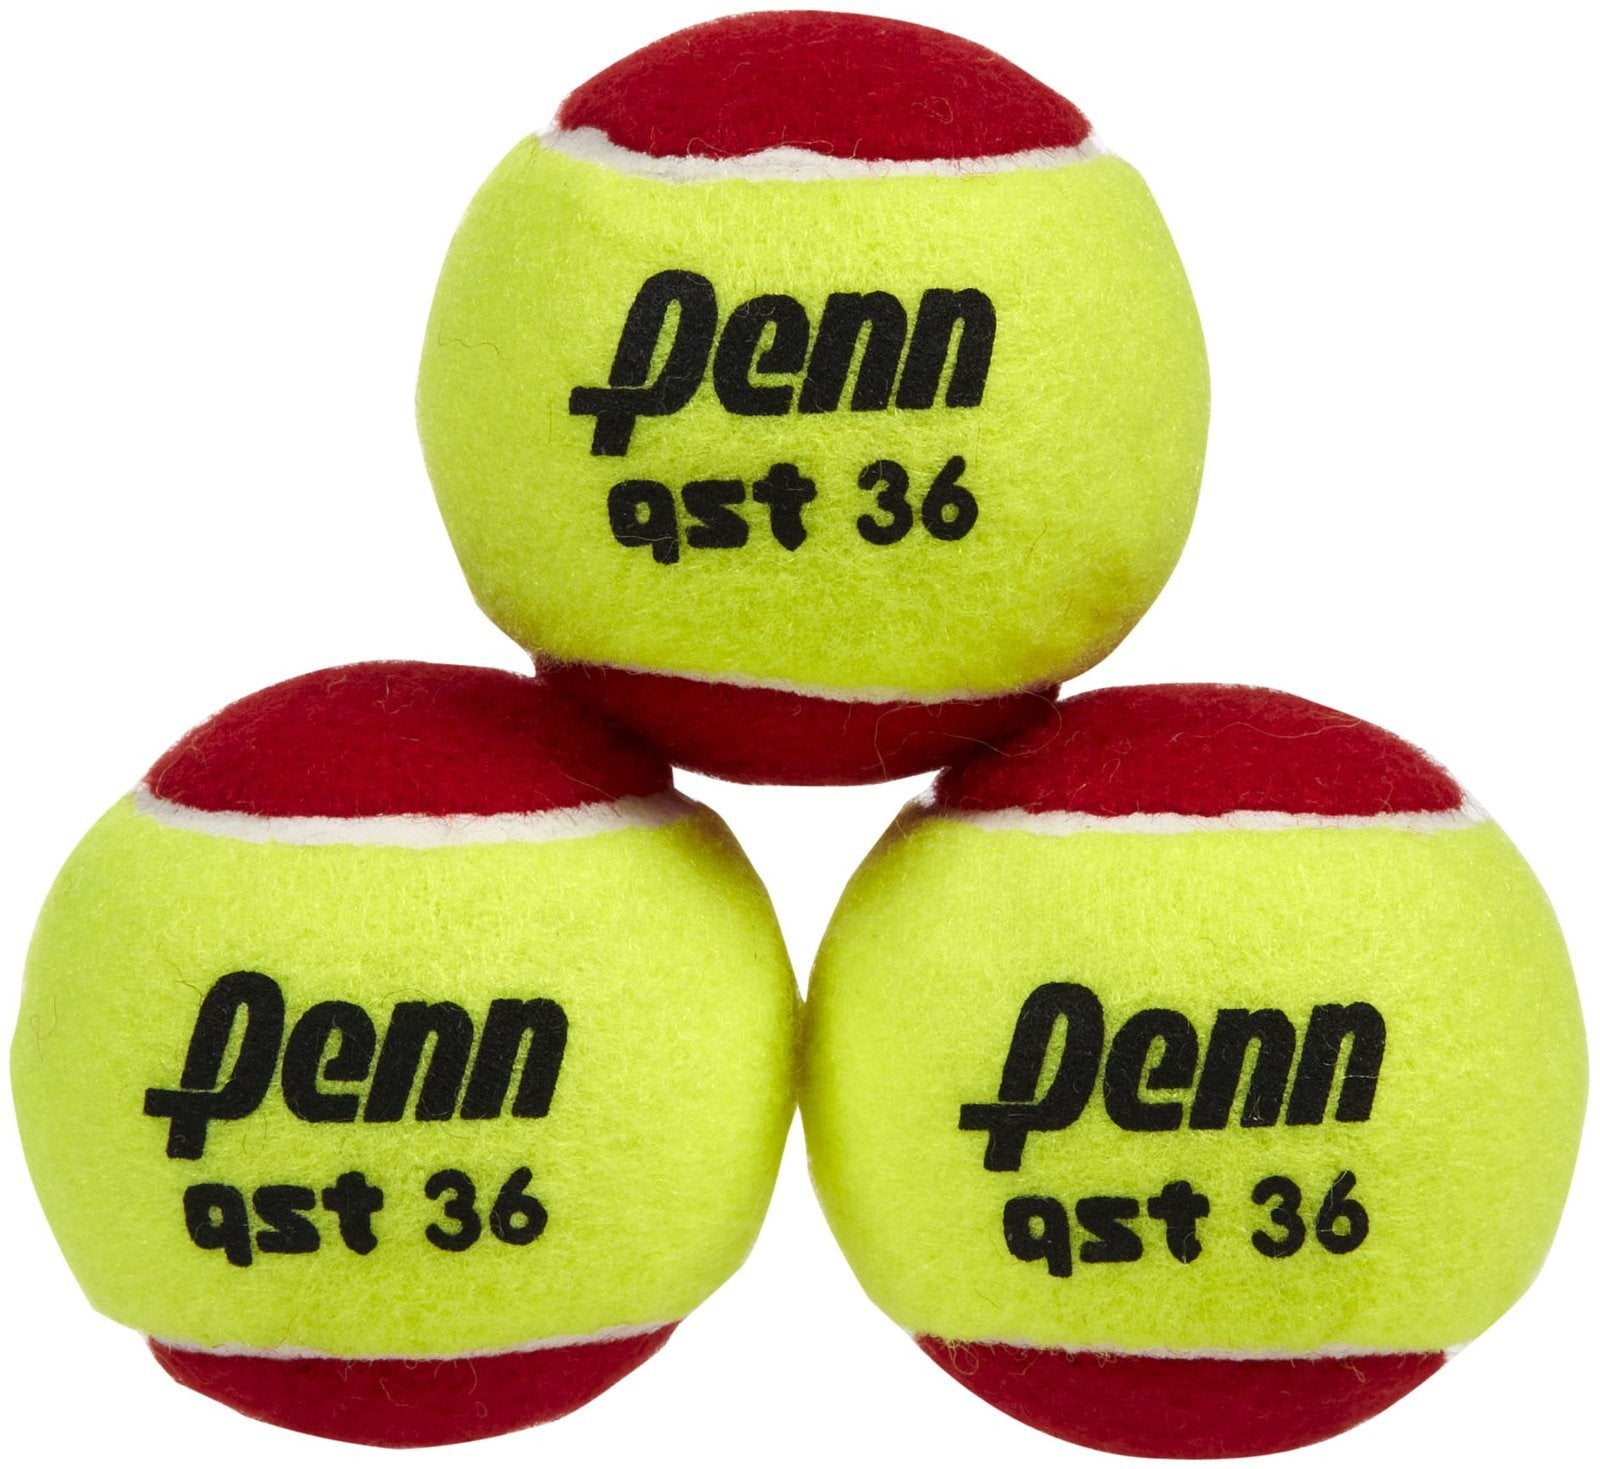 Penn - QST 36 Felt-Tennis Accessories-Kunstadt Sports